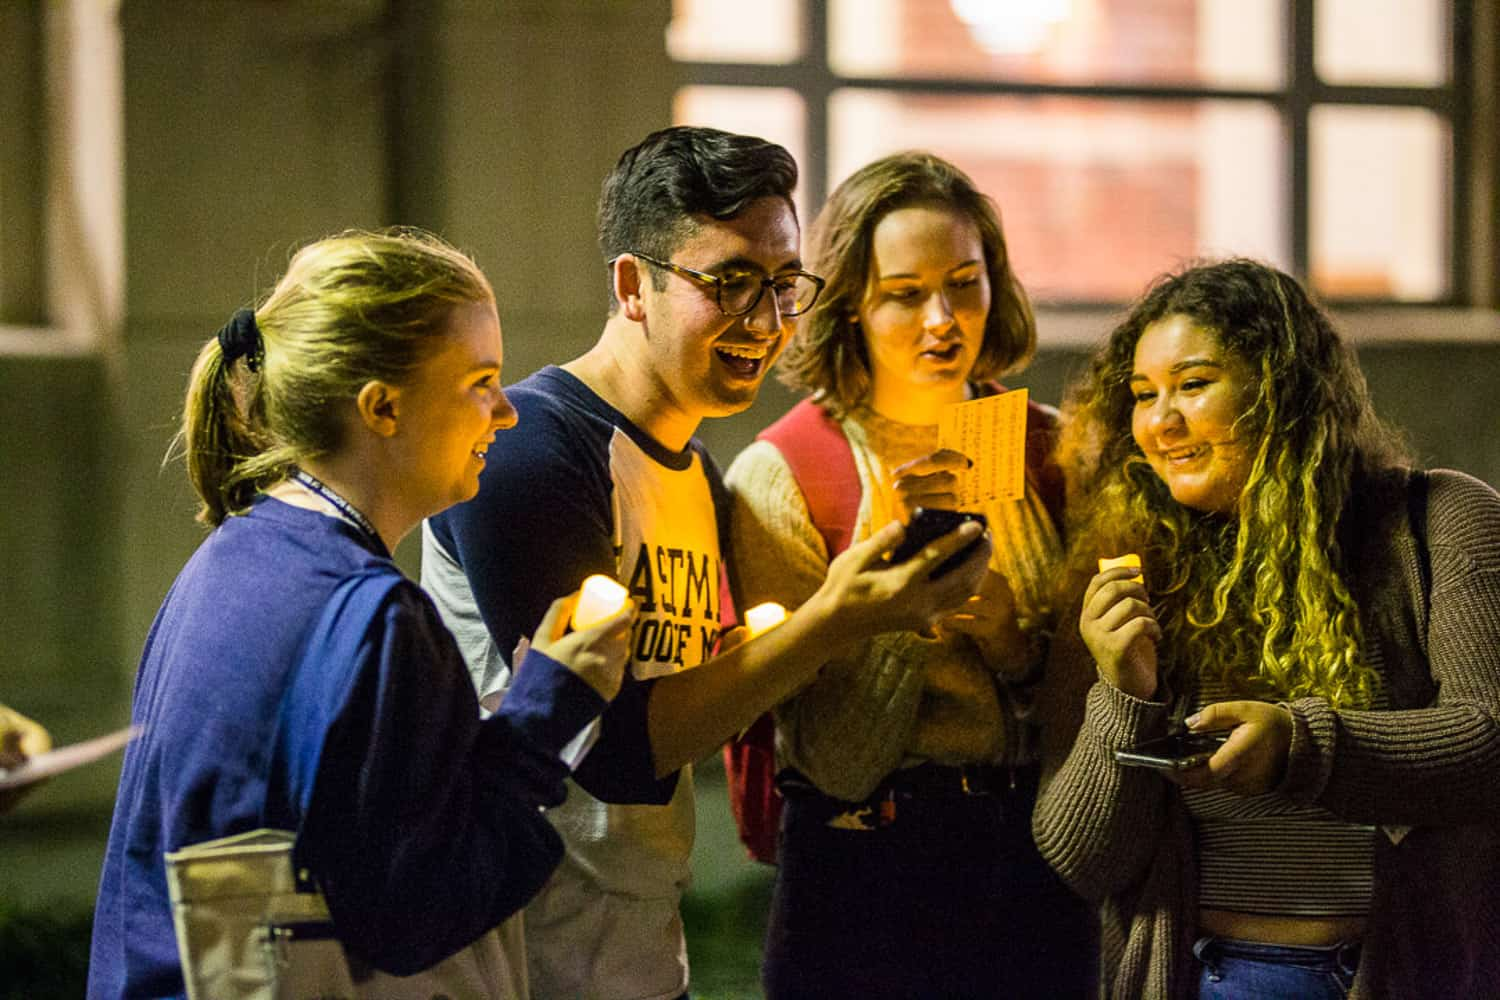 Photography of a group of friends at the Eastman School of Music candlelight ceremony event.